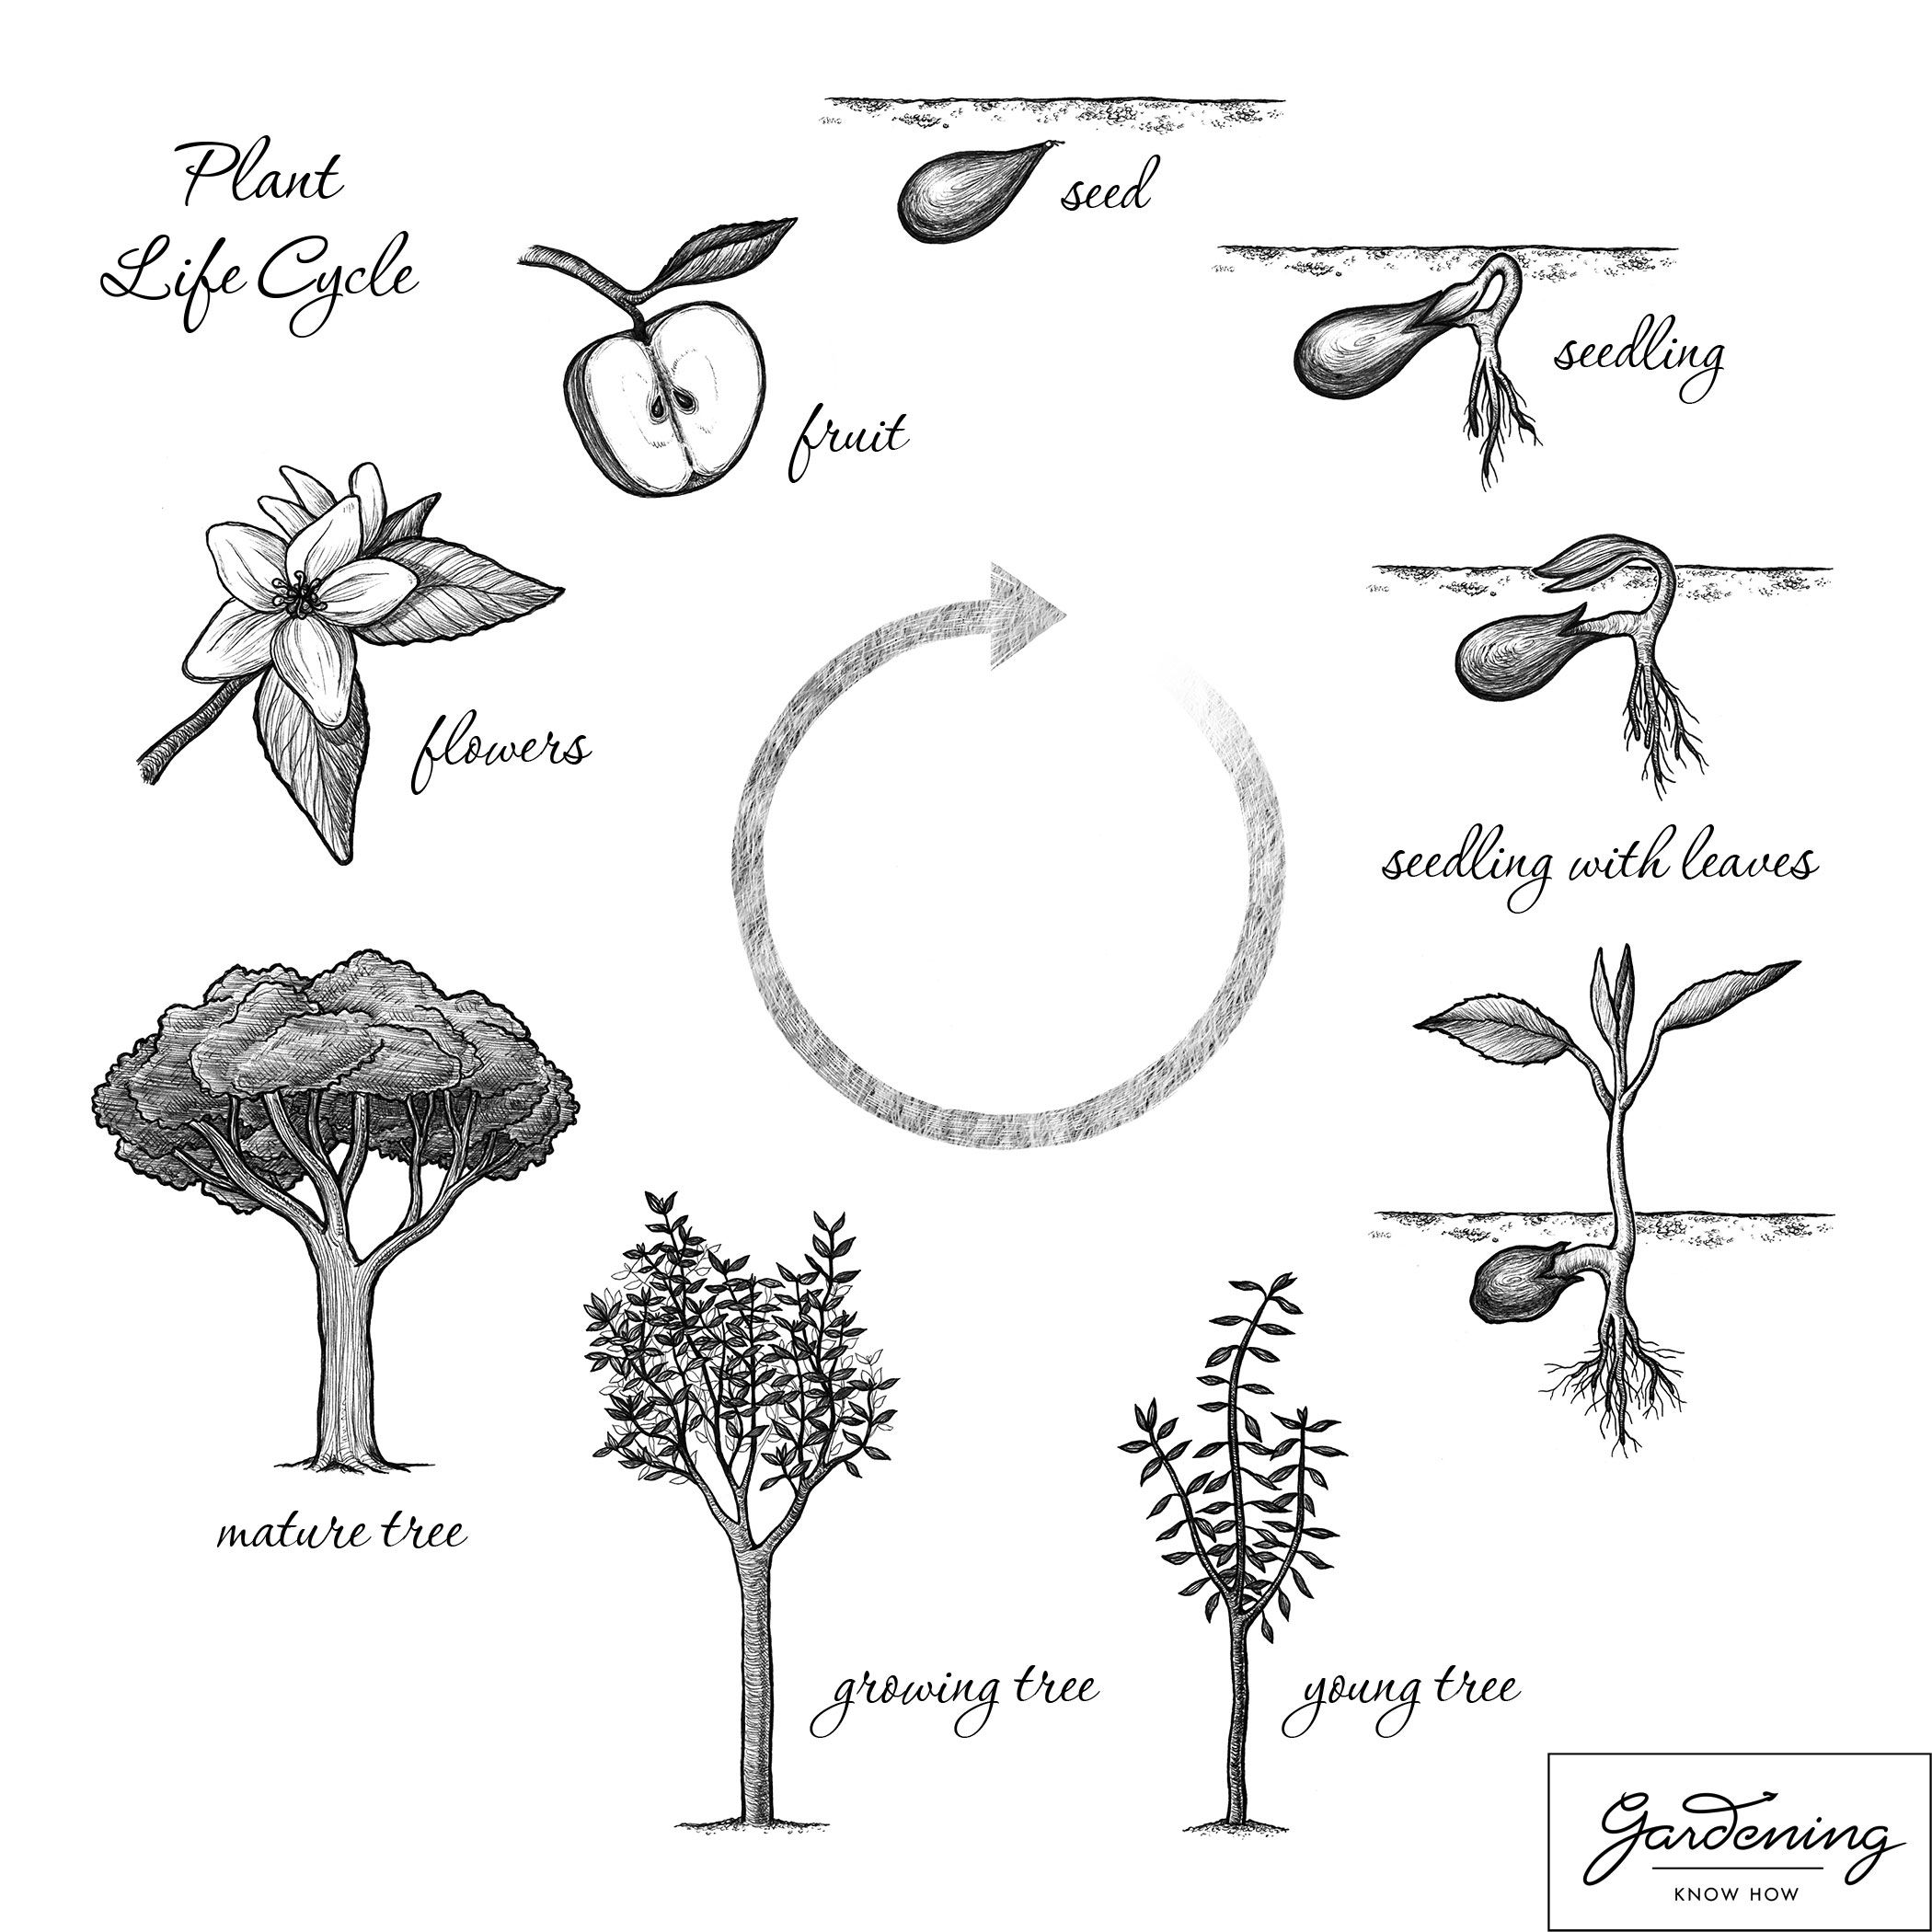 Basic Plant Life Cycle And The Life Cycle Of A Flowering